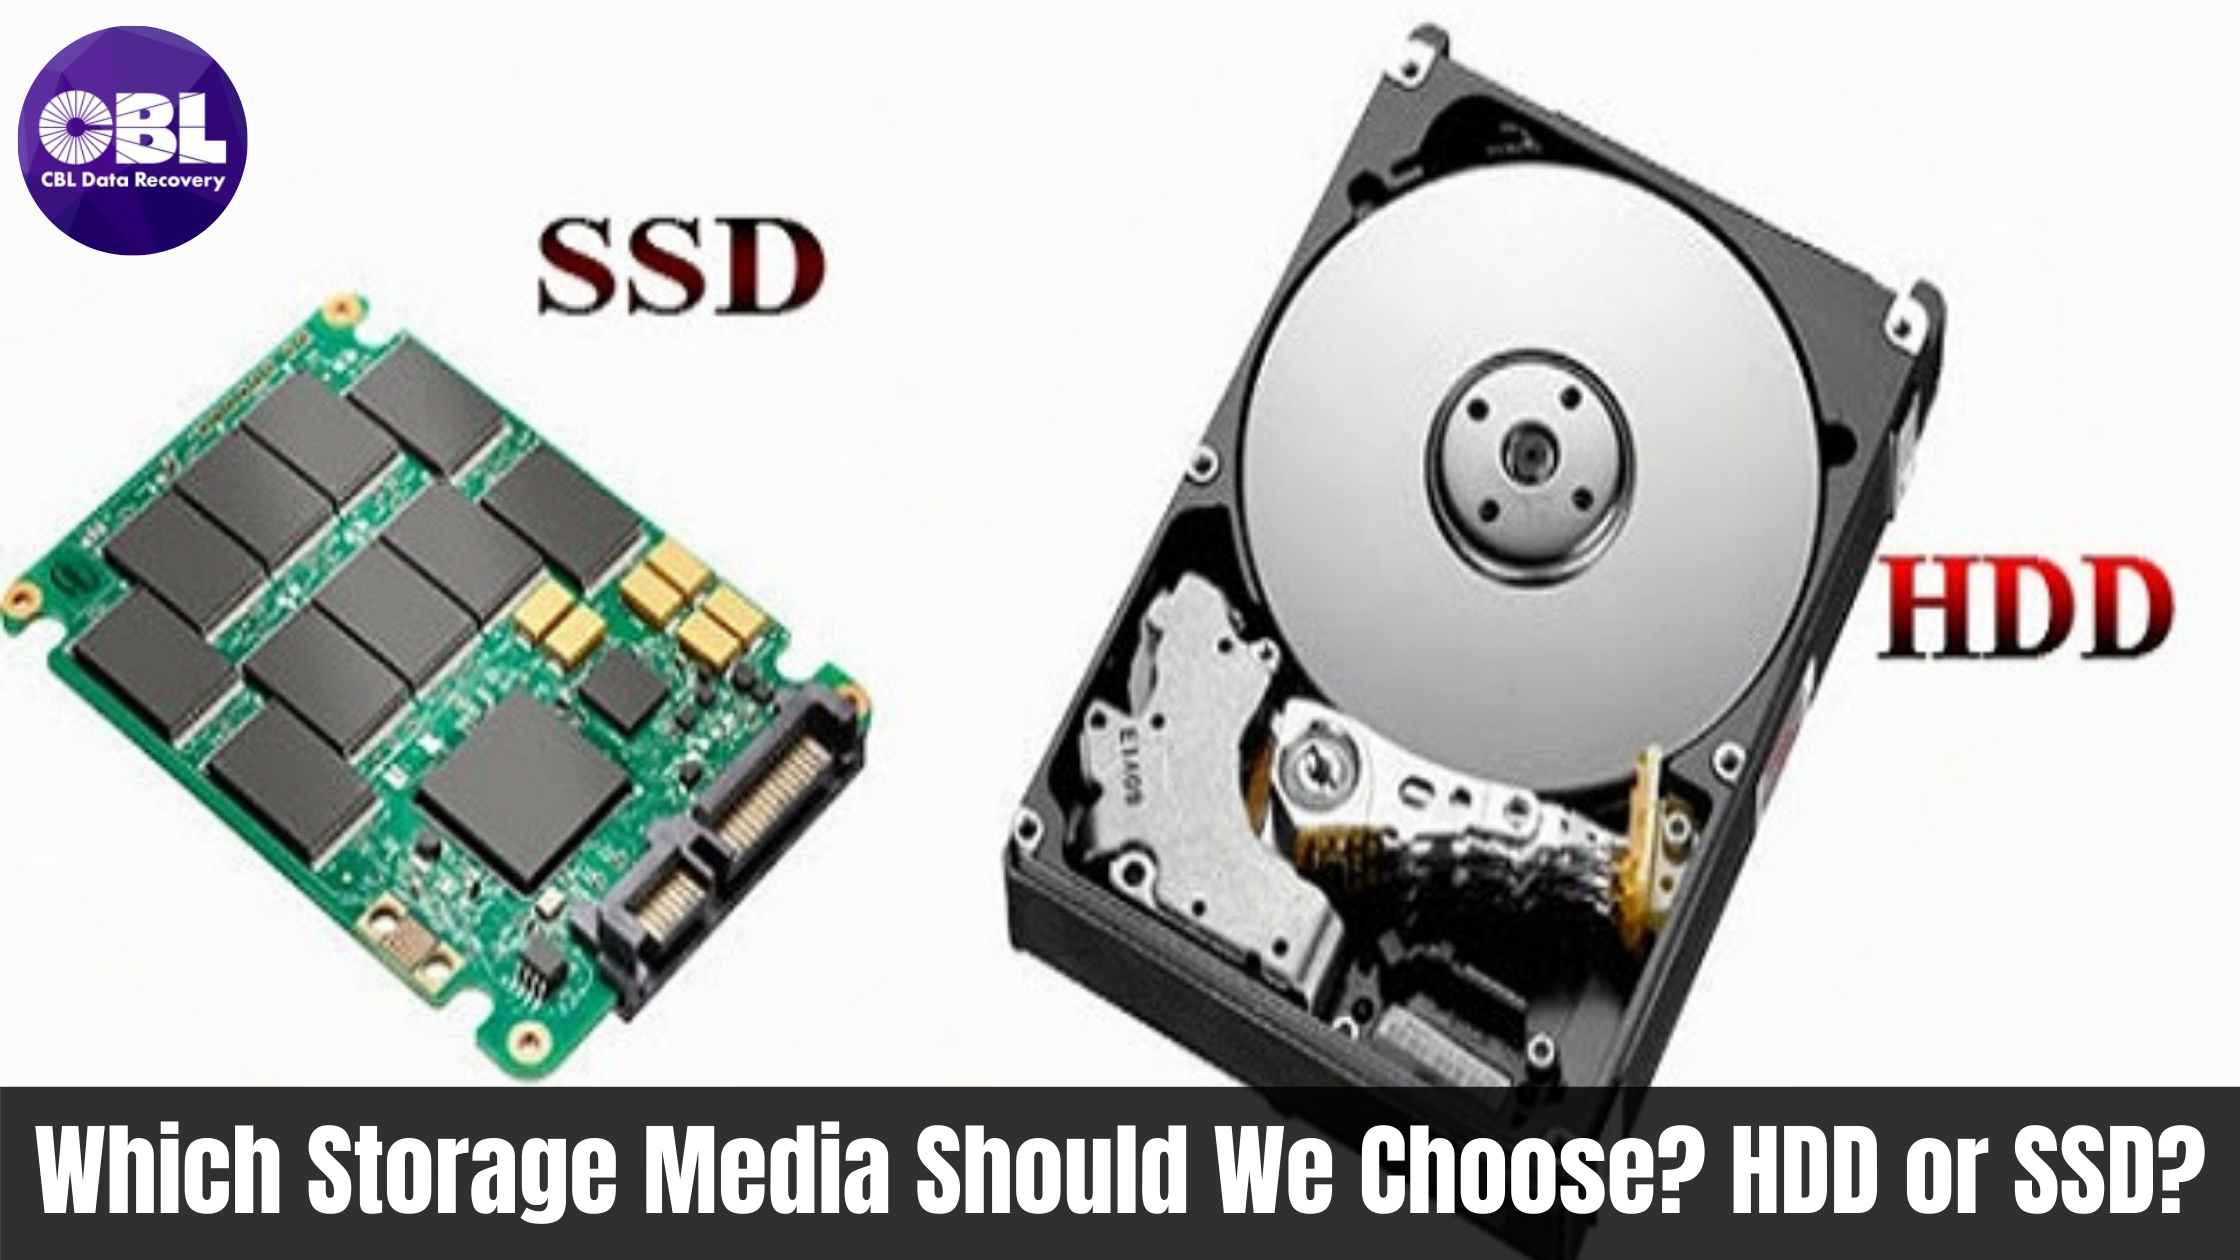 Which Storage Media Should We Choose? HDD or SSD?